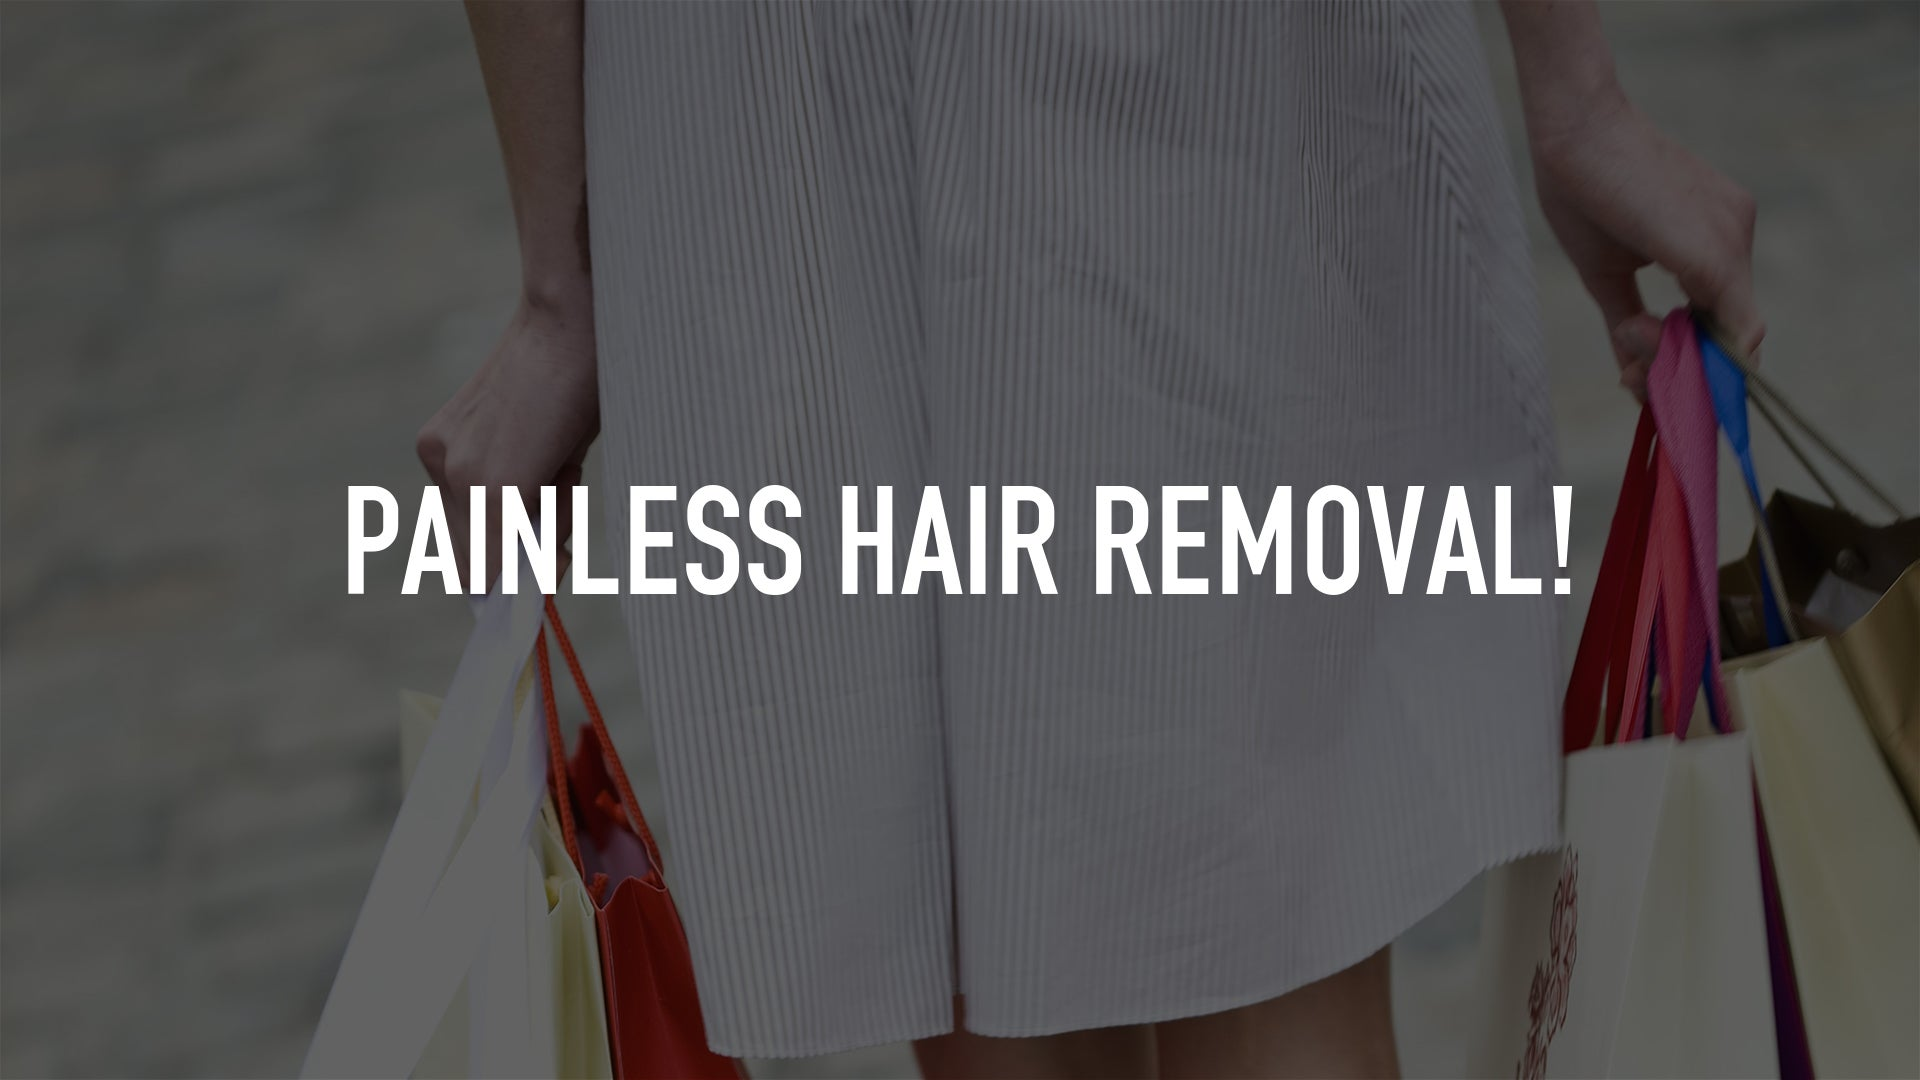 Painless Hair Removal!